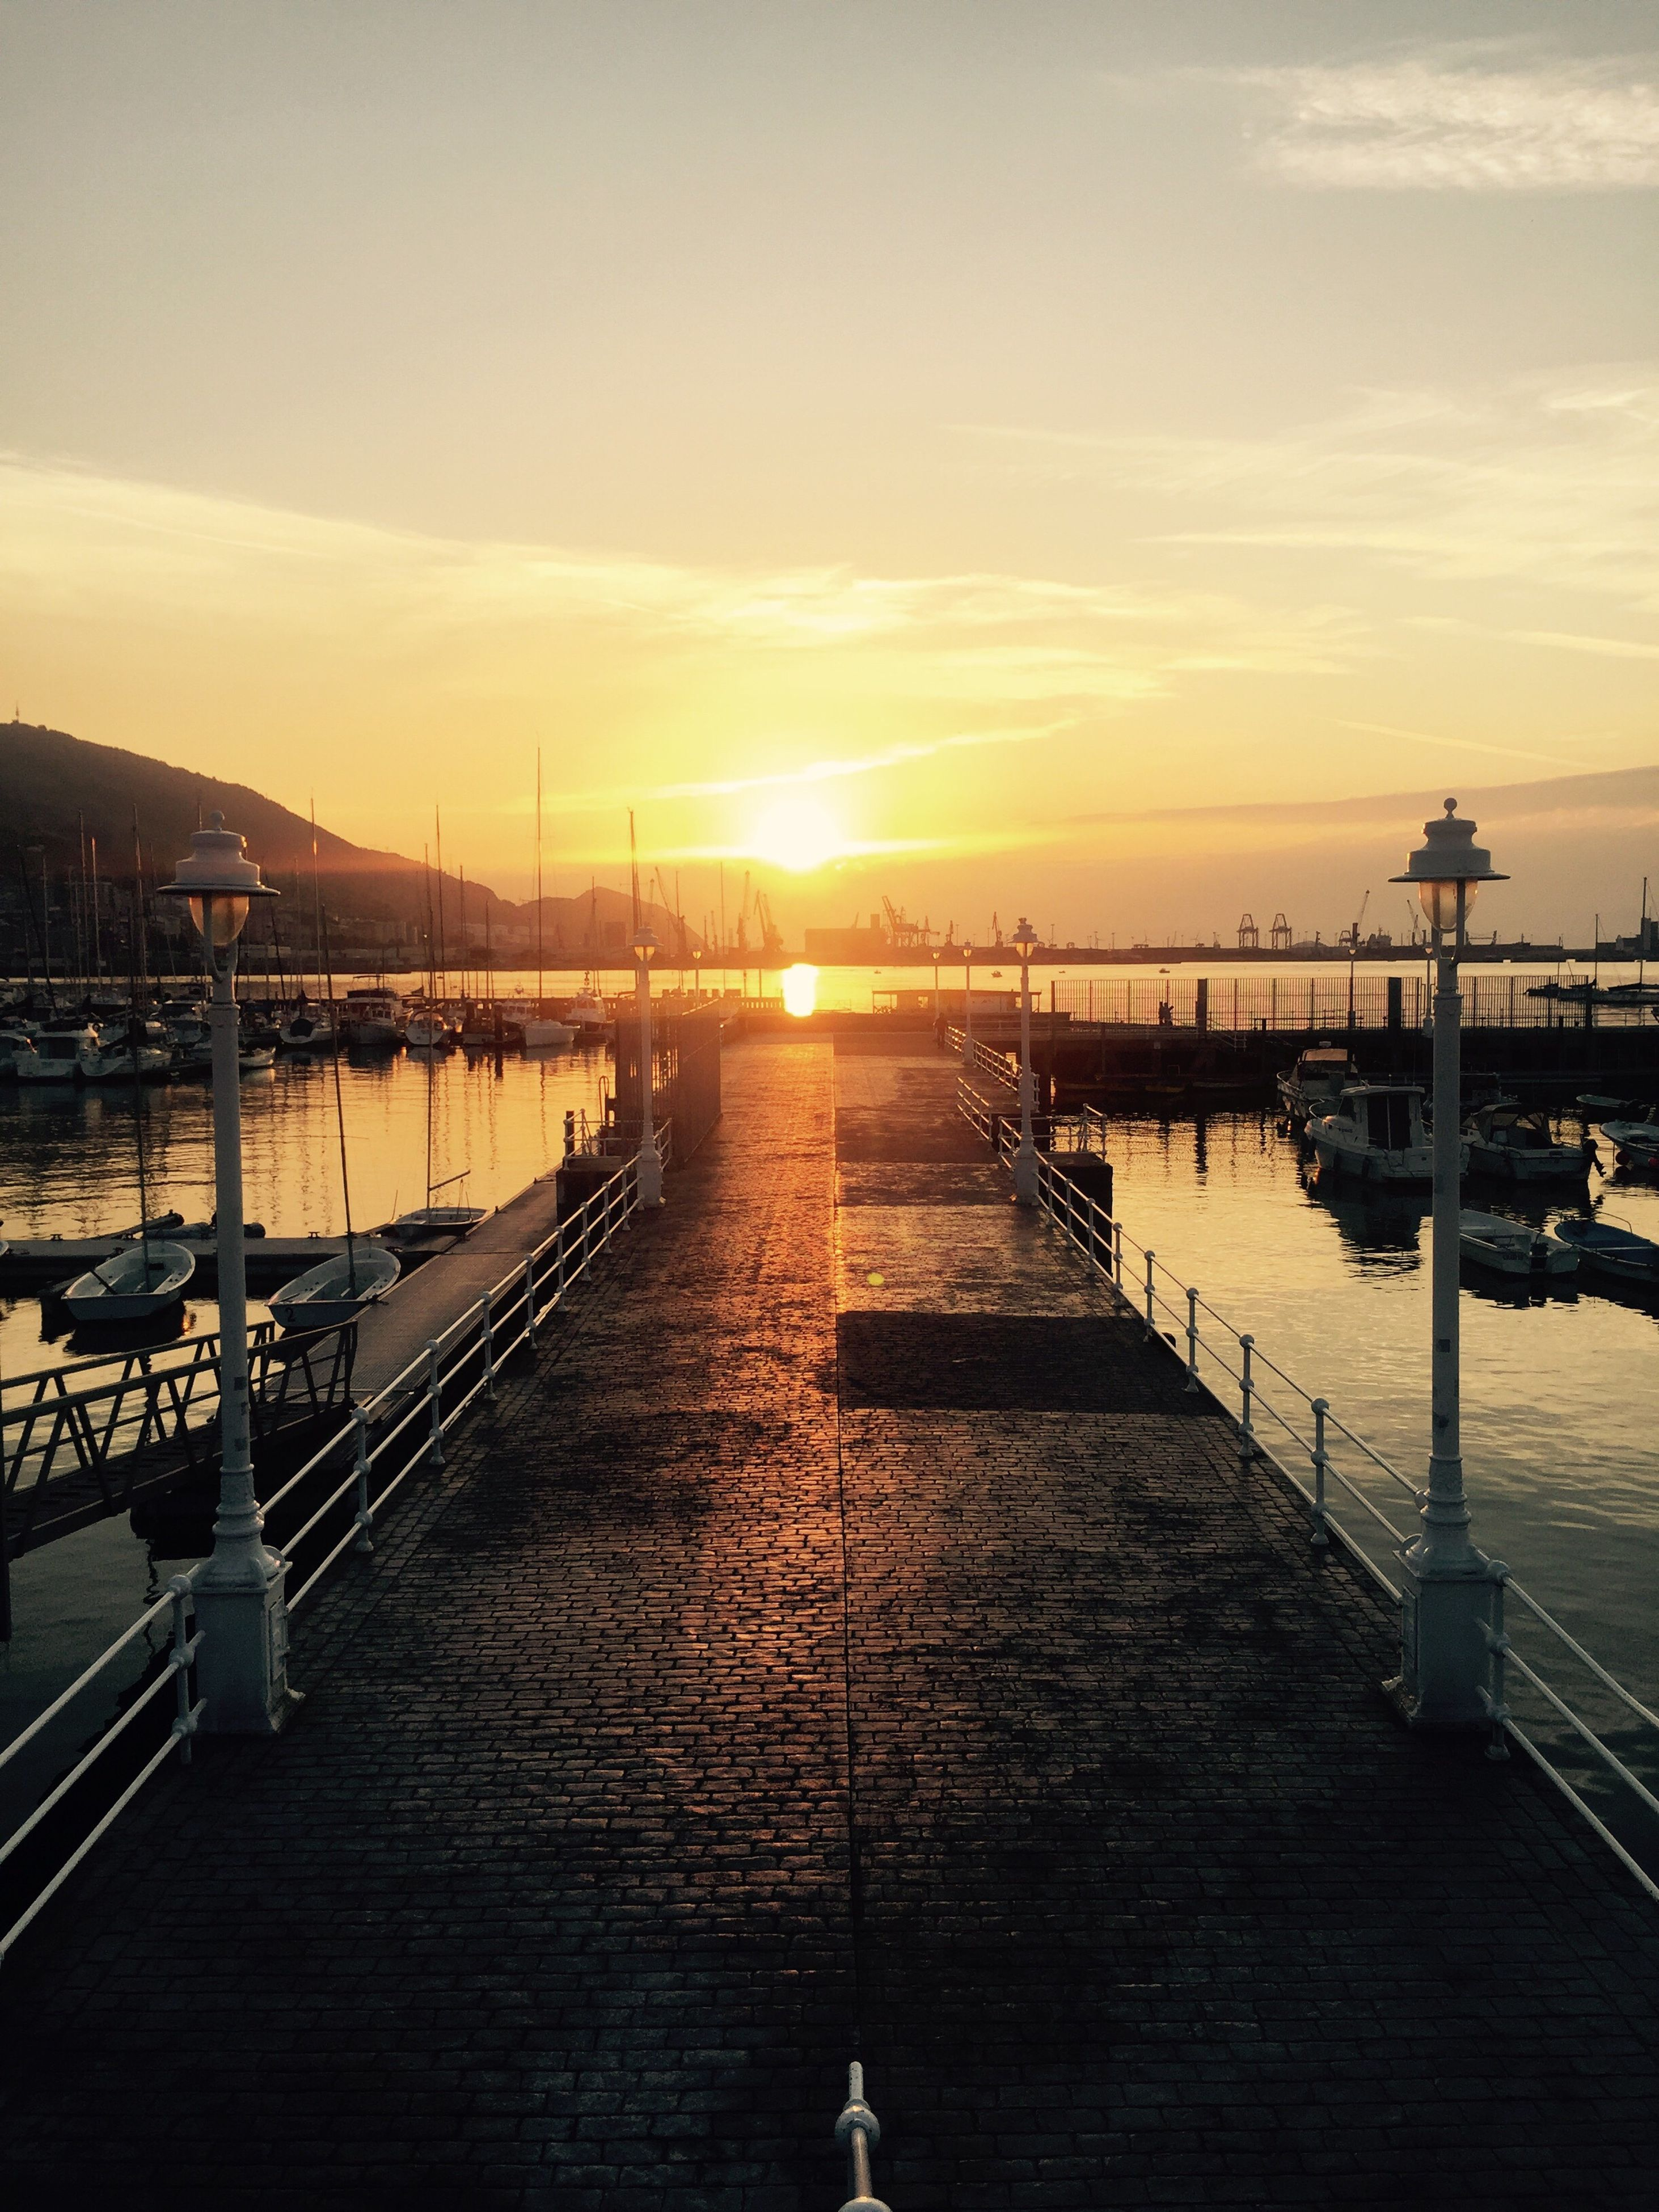 sunset, water, sun, sky, scenics, sunbeam, sunlight, beauty in nature, tranquil scene, nature, tranquility, bridge - man made structure, pier, reflection, sea, outdoors, no people, built structure, cloud - sky, travel destinations, harbor, silhouette, architecture, jetty, nautical vessel, day